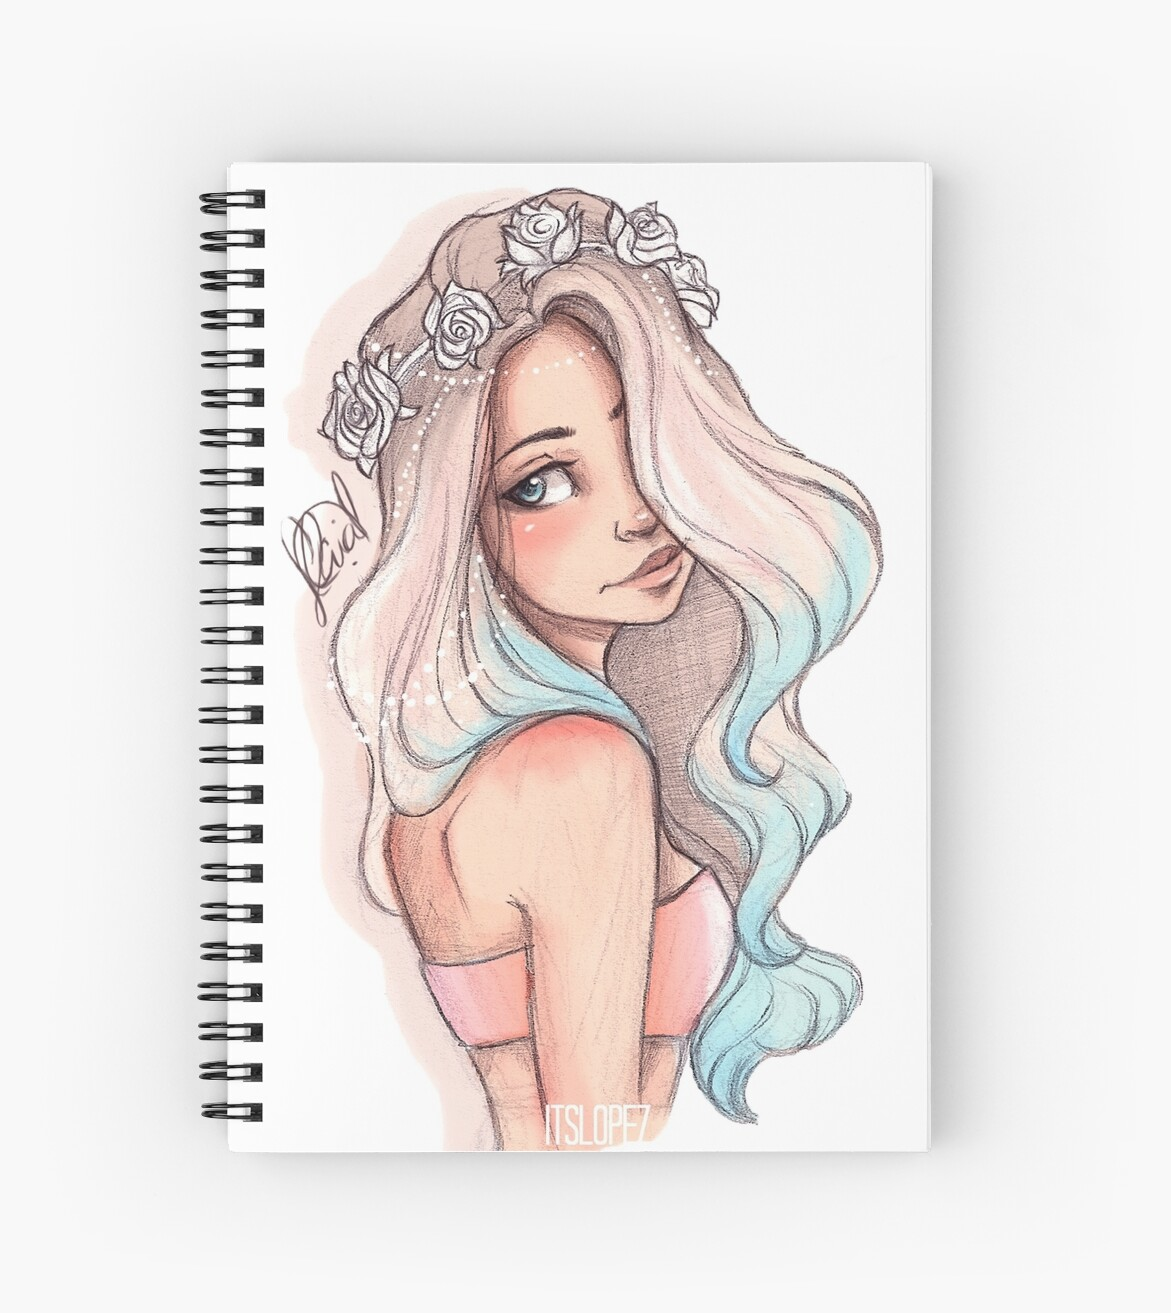 u0026quot mermaid hair u0026quot  spiral notebooks by itslopez